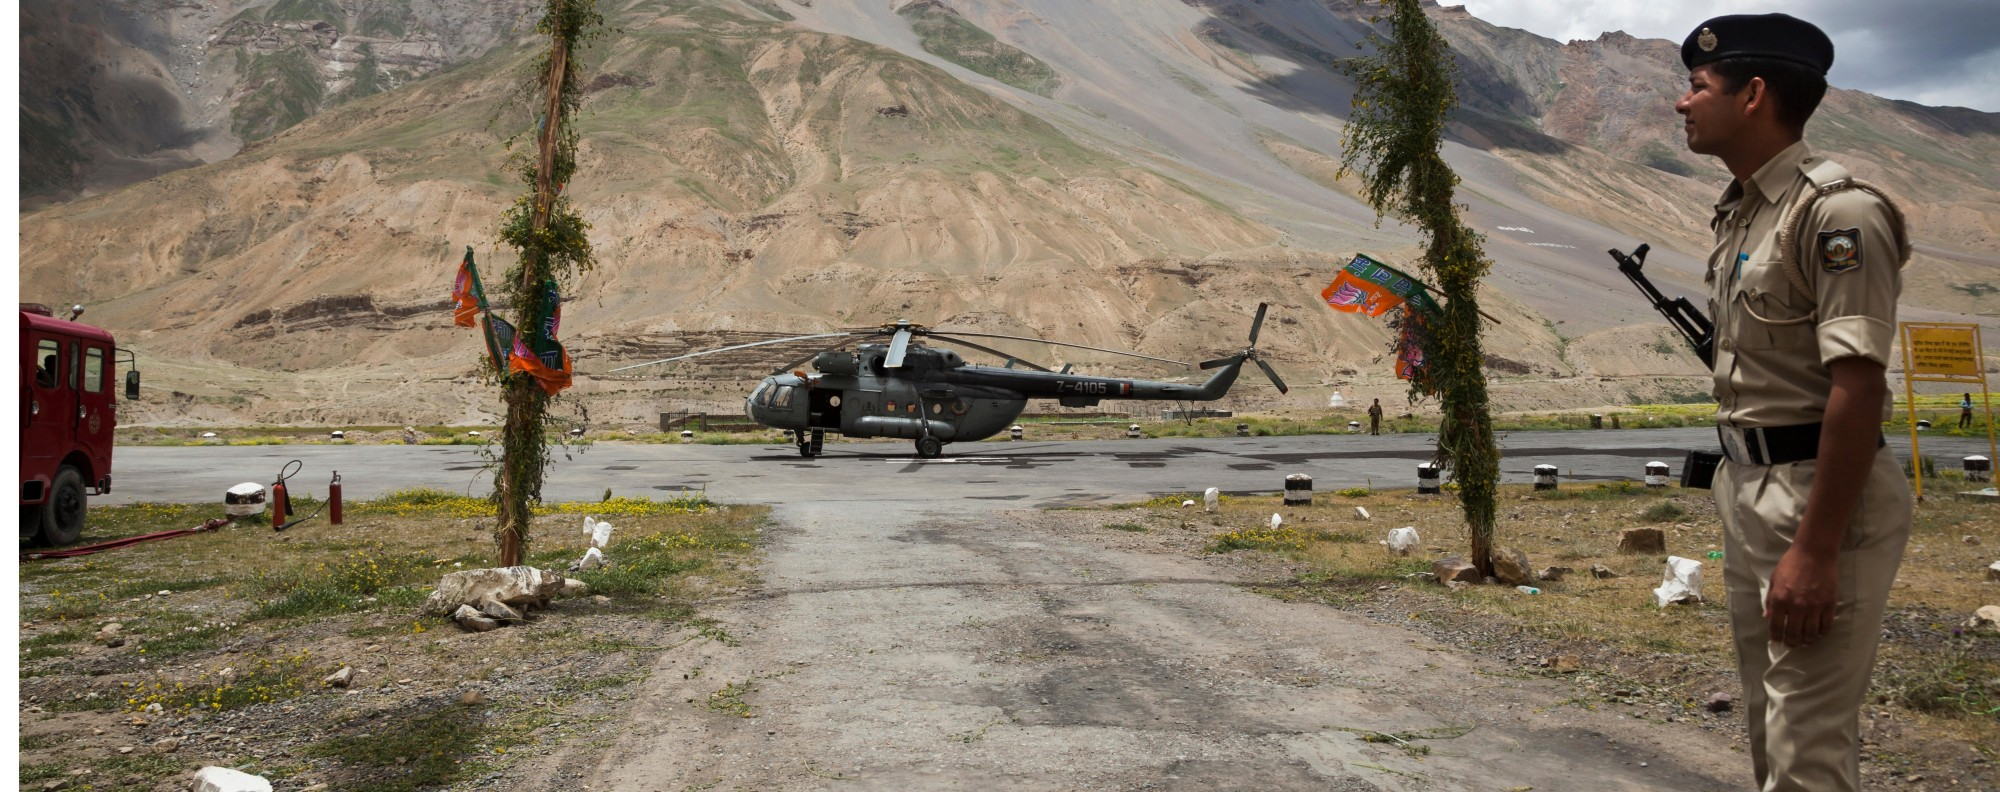 An Indian soldier guards a helicopter near the border in Himachal Pradesh. Handout photo